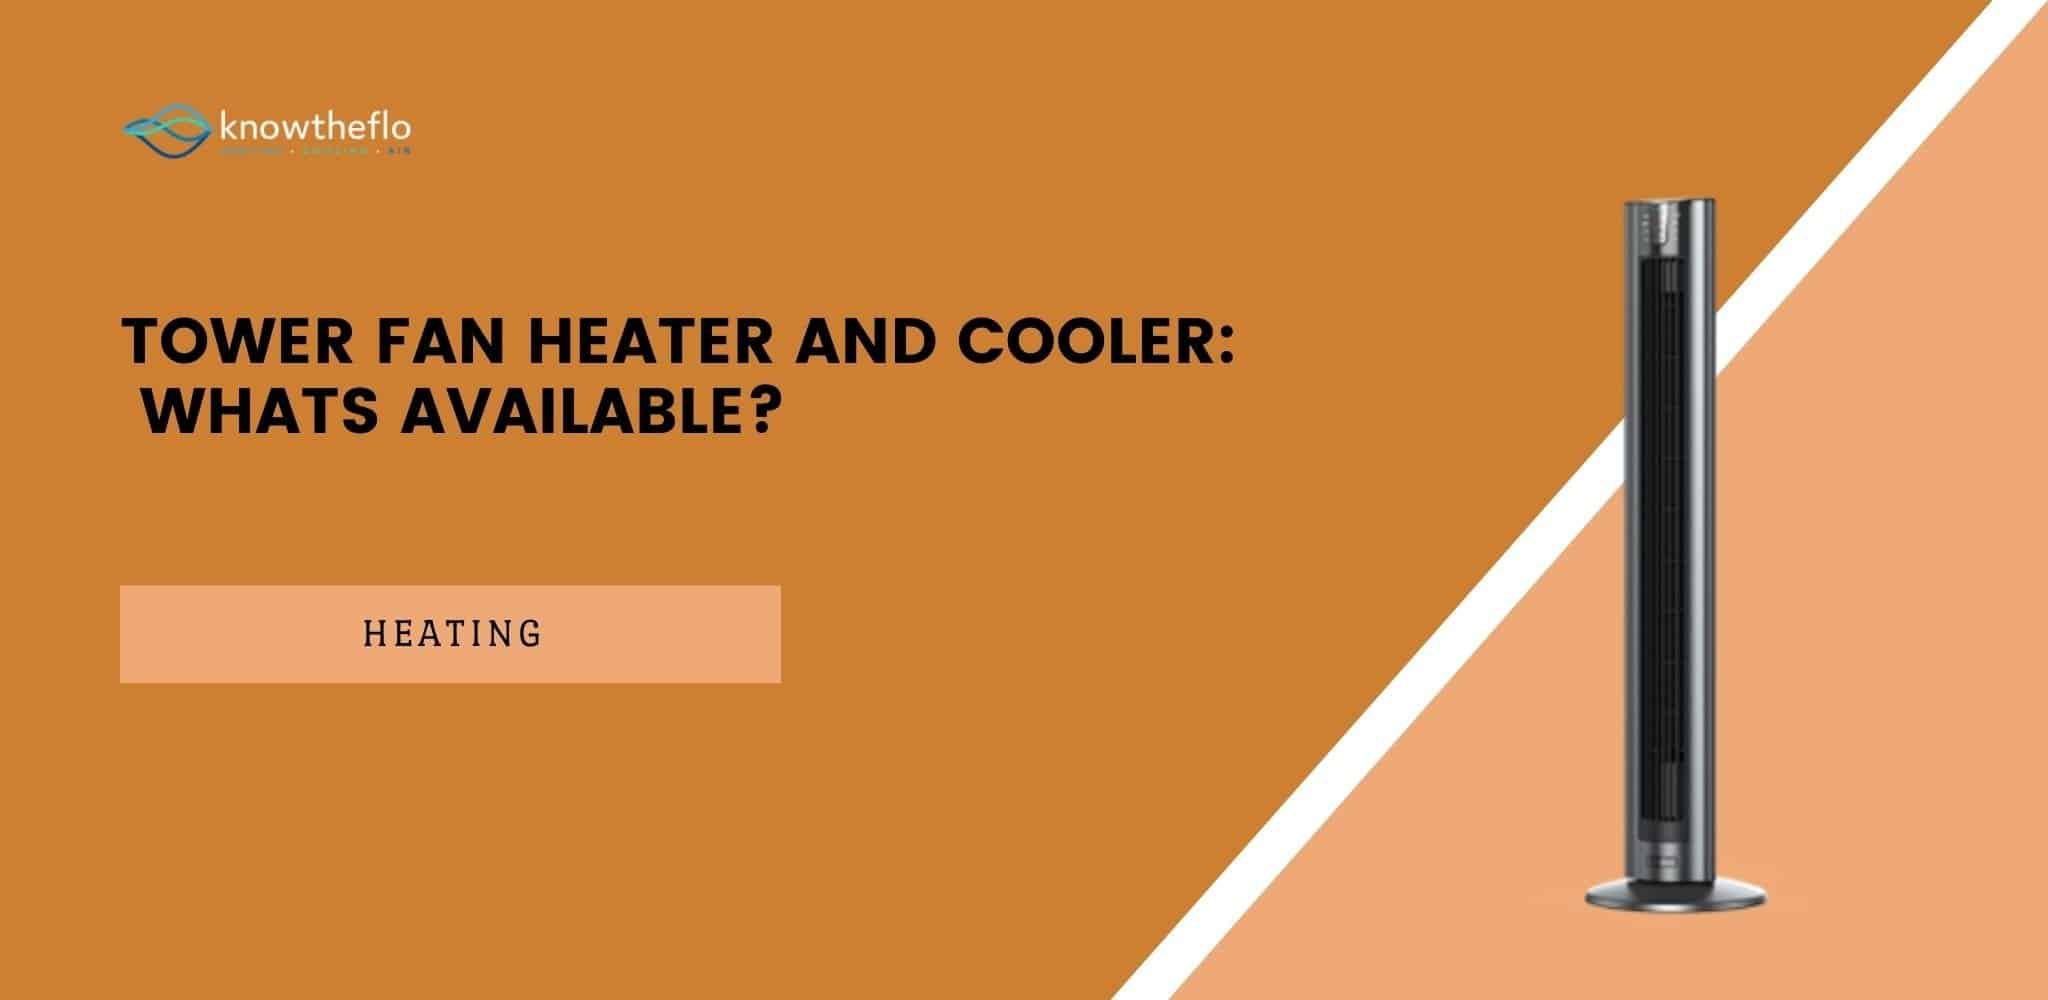 Tower Fan Heater and Cooler - What's Available